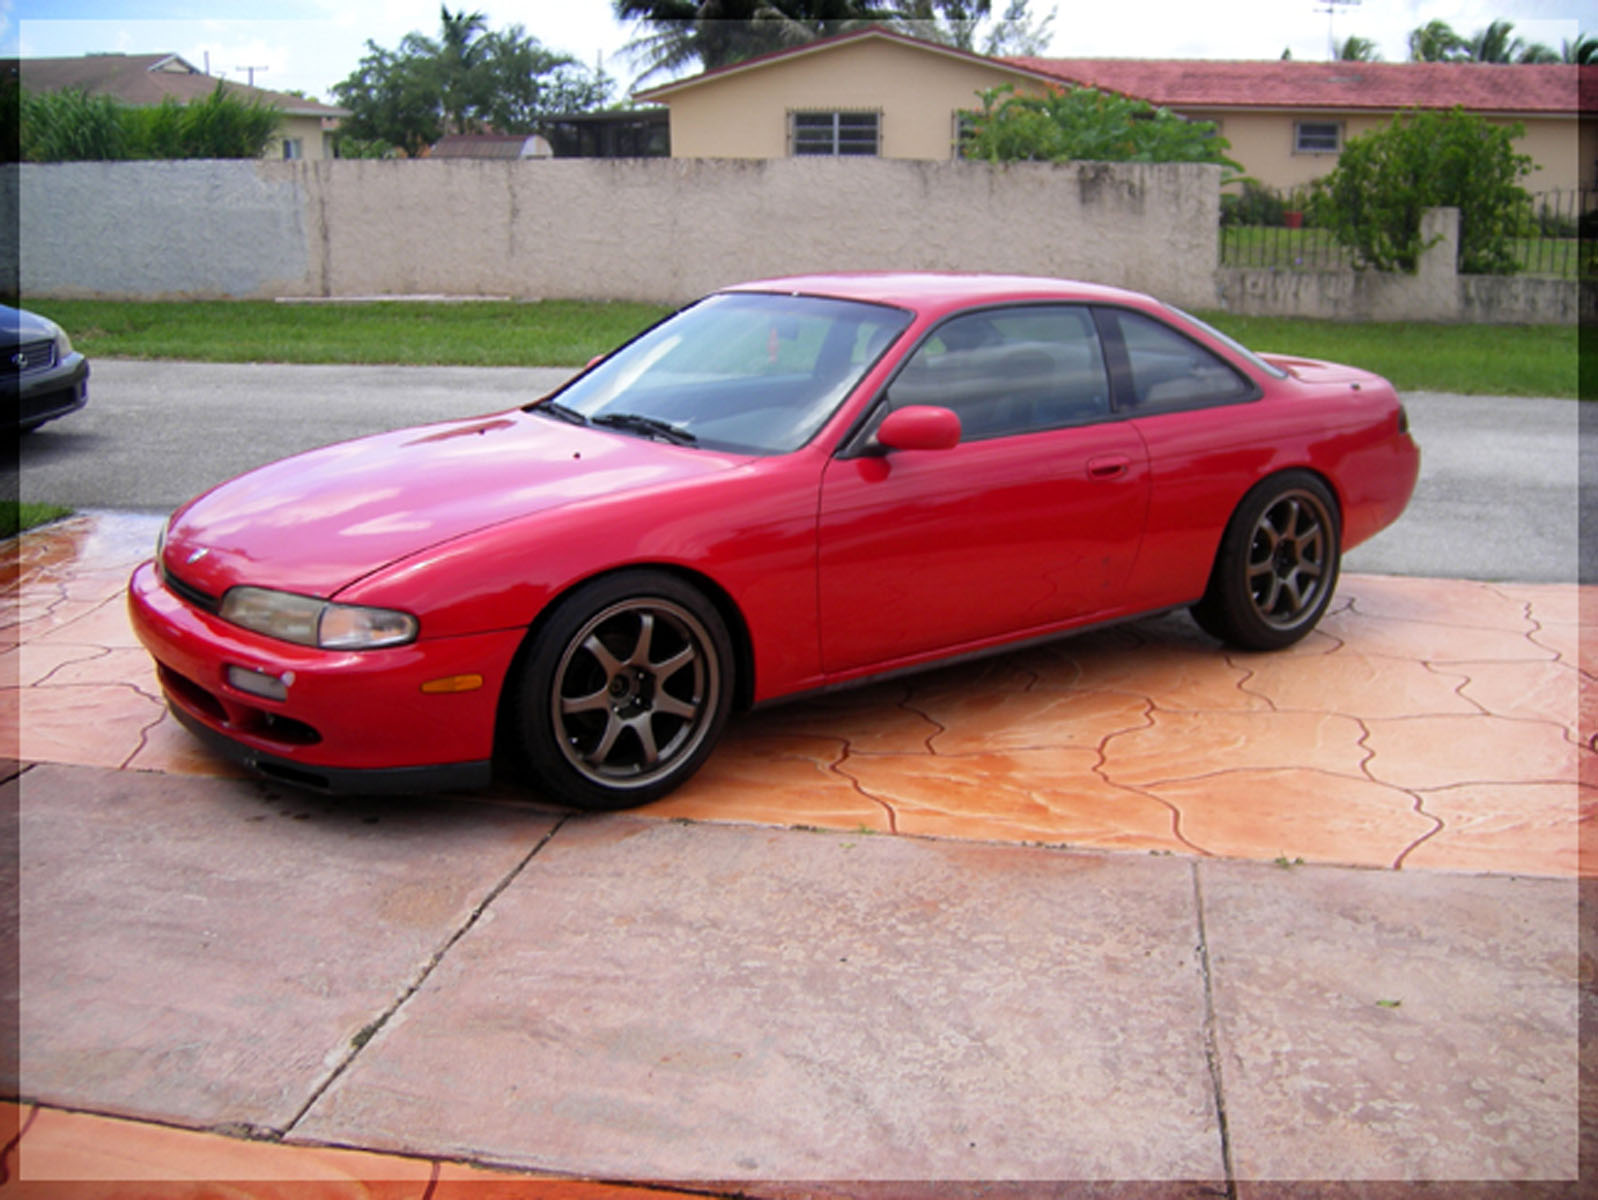 1995 nissan 240sx for sale beverly hills california. Black Bedroom Furniture Sets. Home Design Ideas